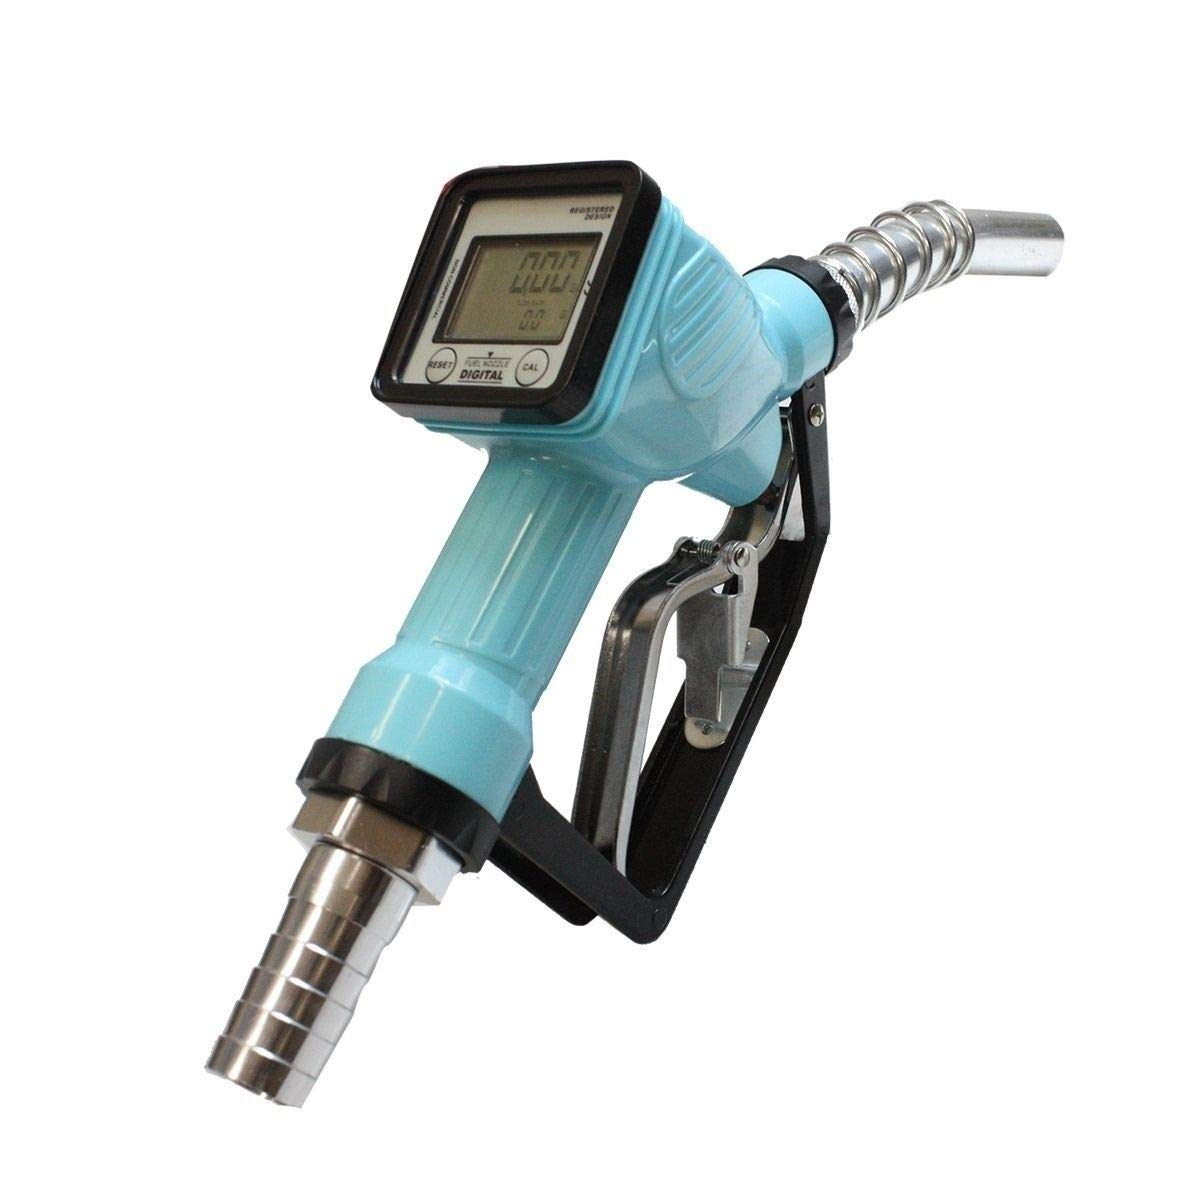 9TRADING Turbine Mechanical Gas Diesel Digital Fuel Nozzle with Accuracy LCD Reading Meter by 9TRADING (Image #7)